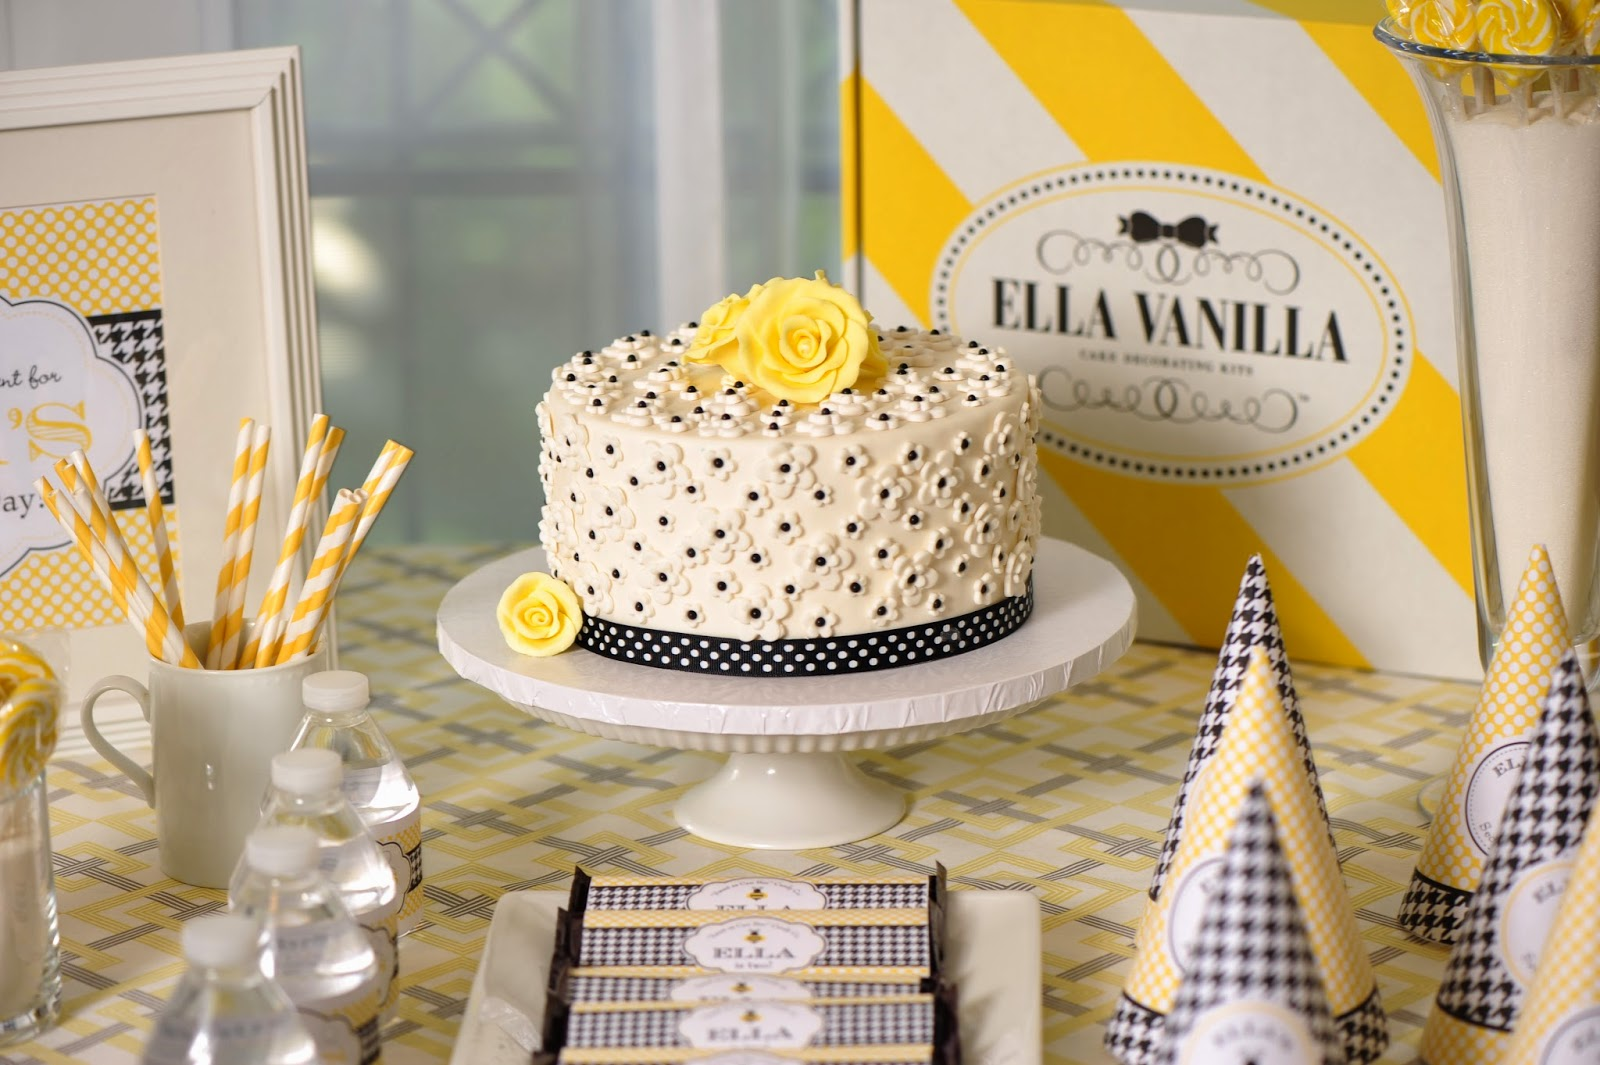 DIY Fondant Cake Decorating Kits By Ella Vanilla